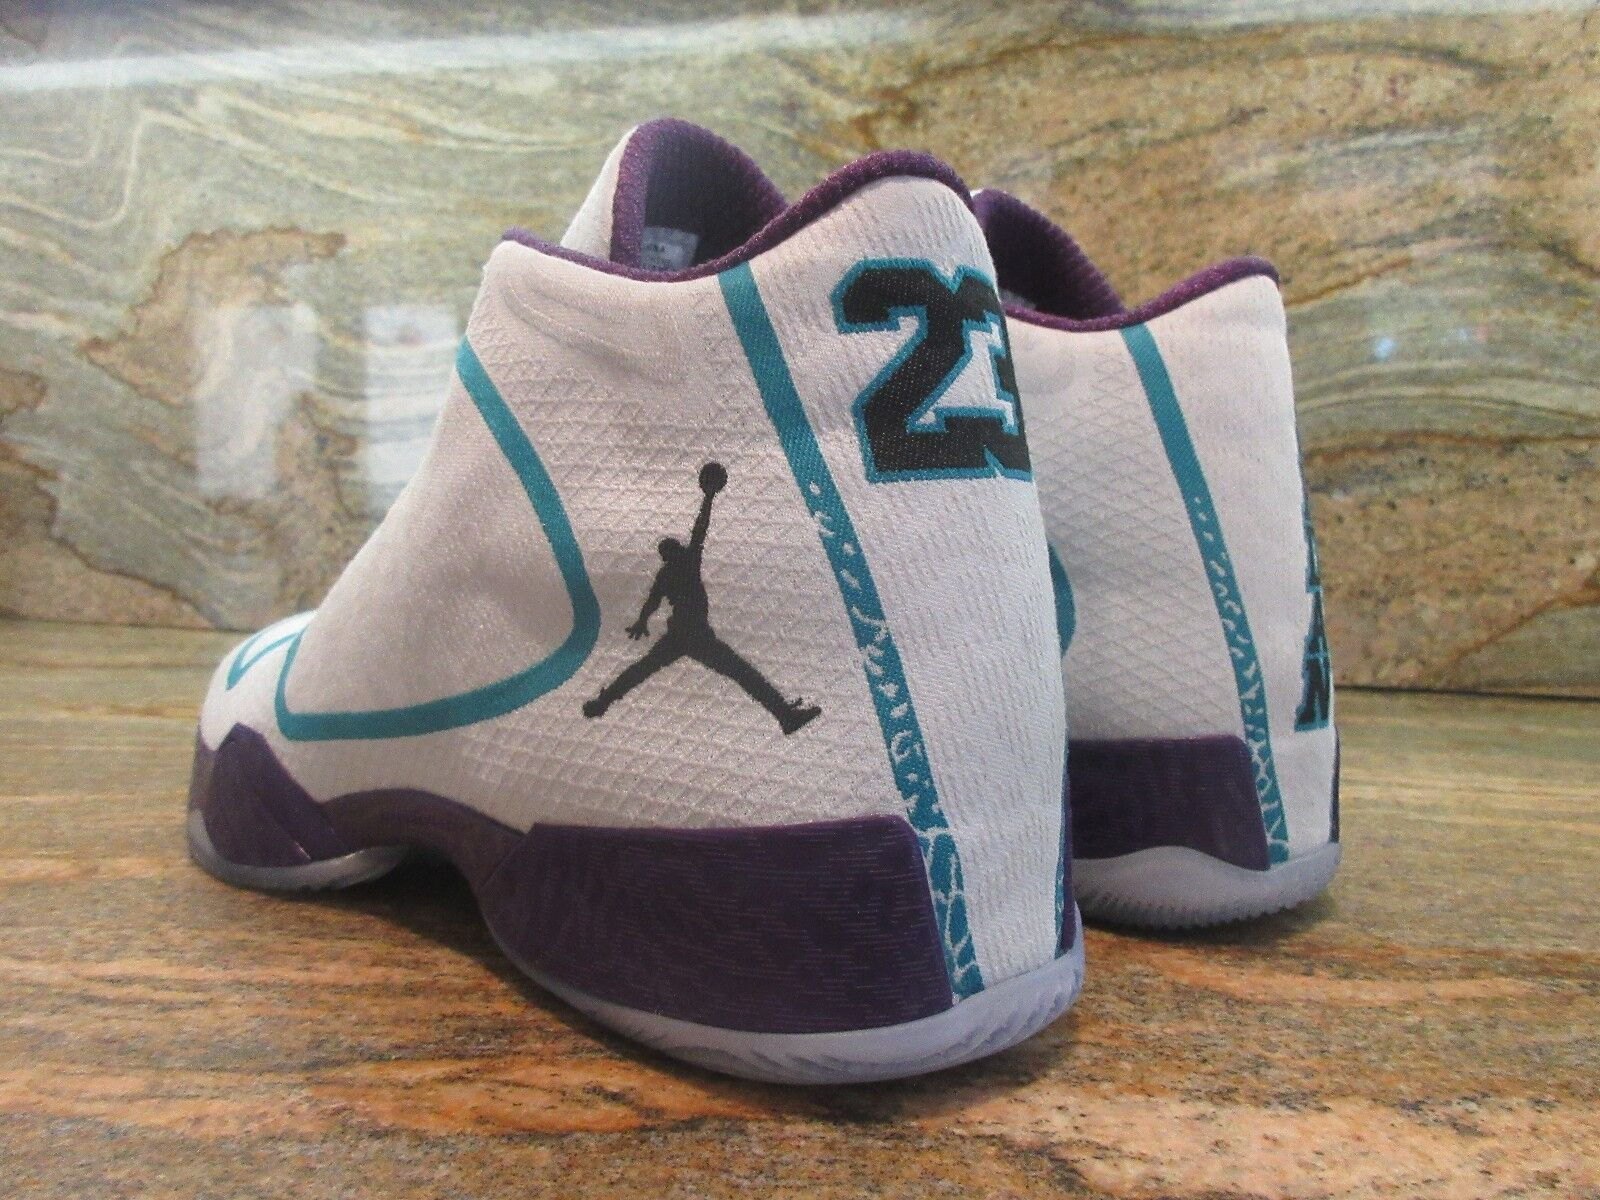 eb94eb343ad ... Unreleased Nike Air Jordan XX9 XX9 XX9 29 Promo Sample SZ 13 Charlotte  Hornets MJ CEO ...